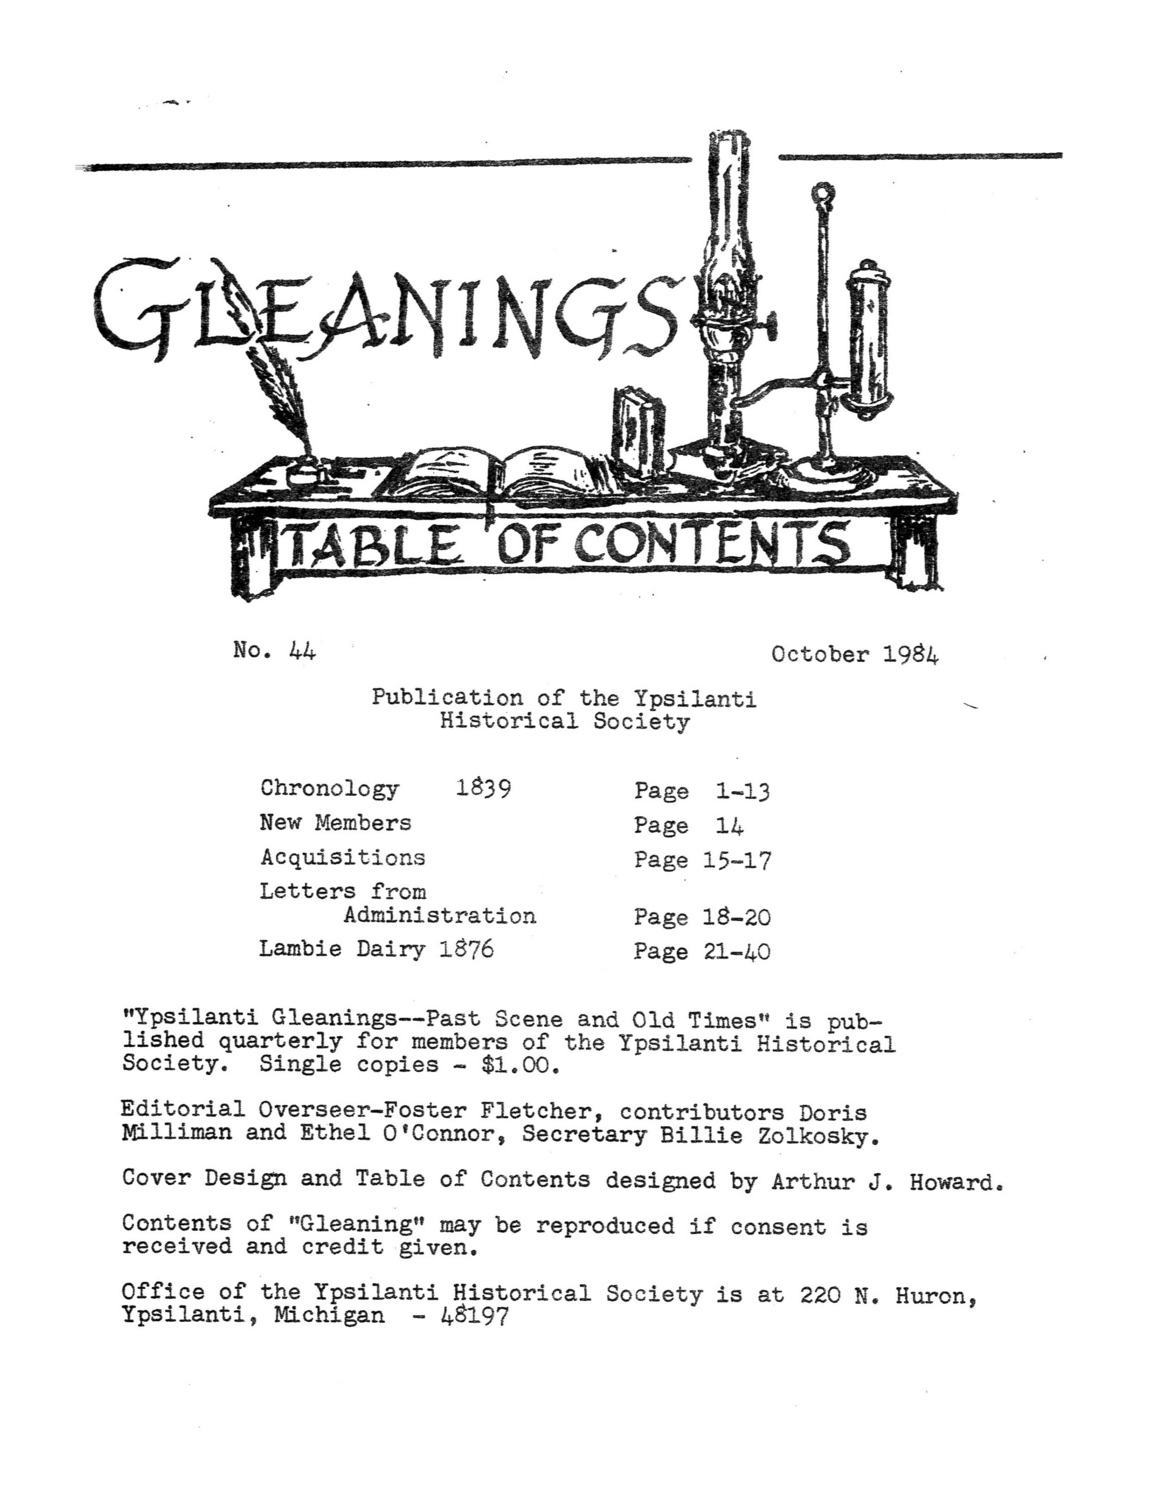 Ypsilanti Gleanings, October 1984 image